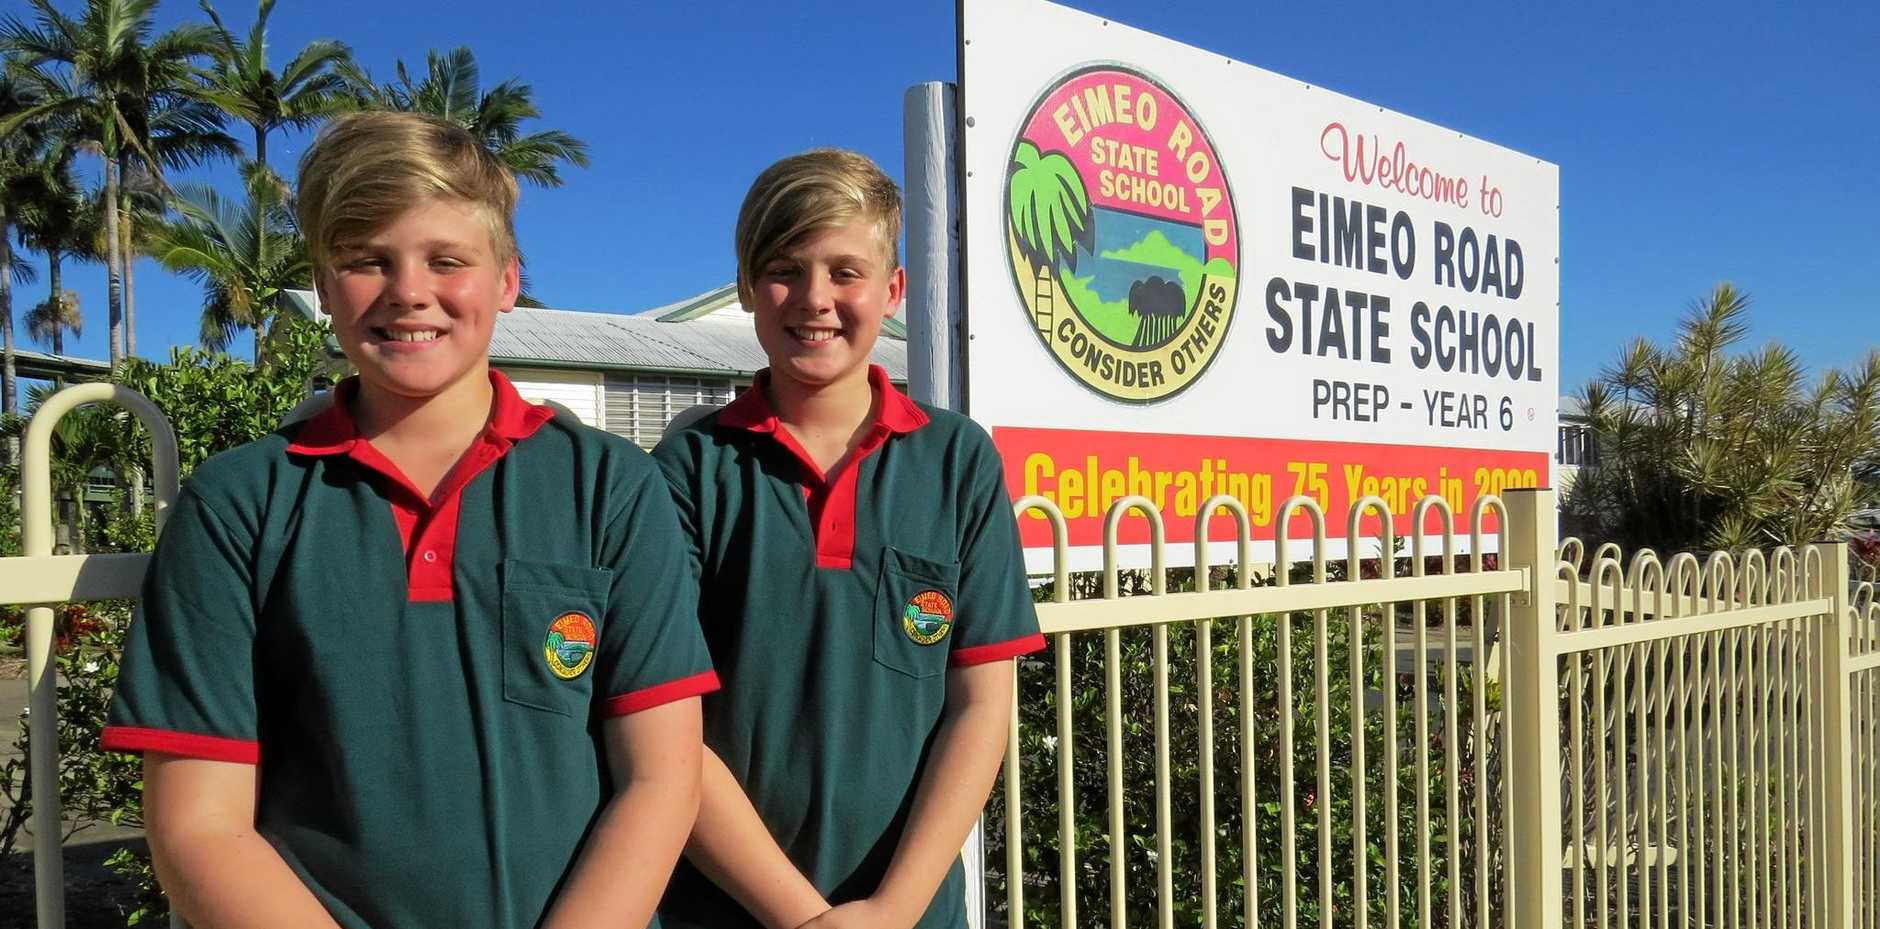 WHAT A RECORD! Christian and Ethan Desborough are enrolments 1000 and 1001 at Eimeo Road State School